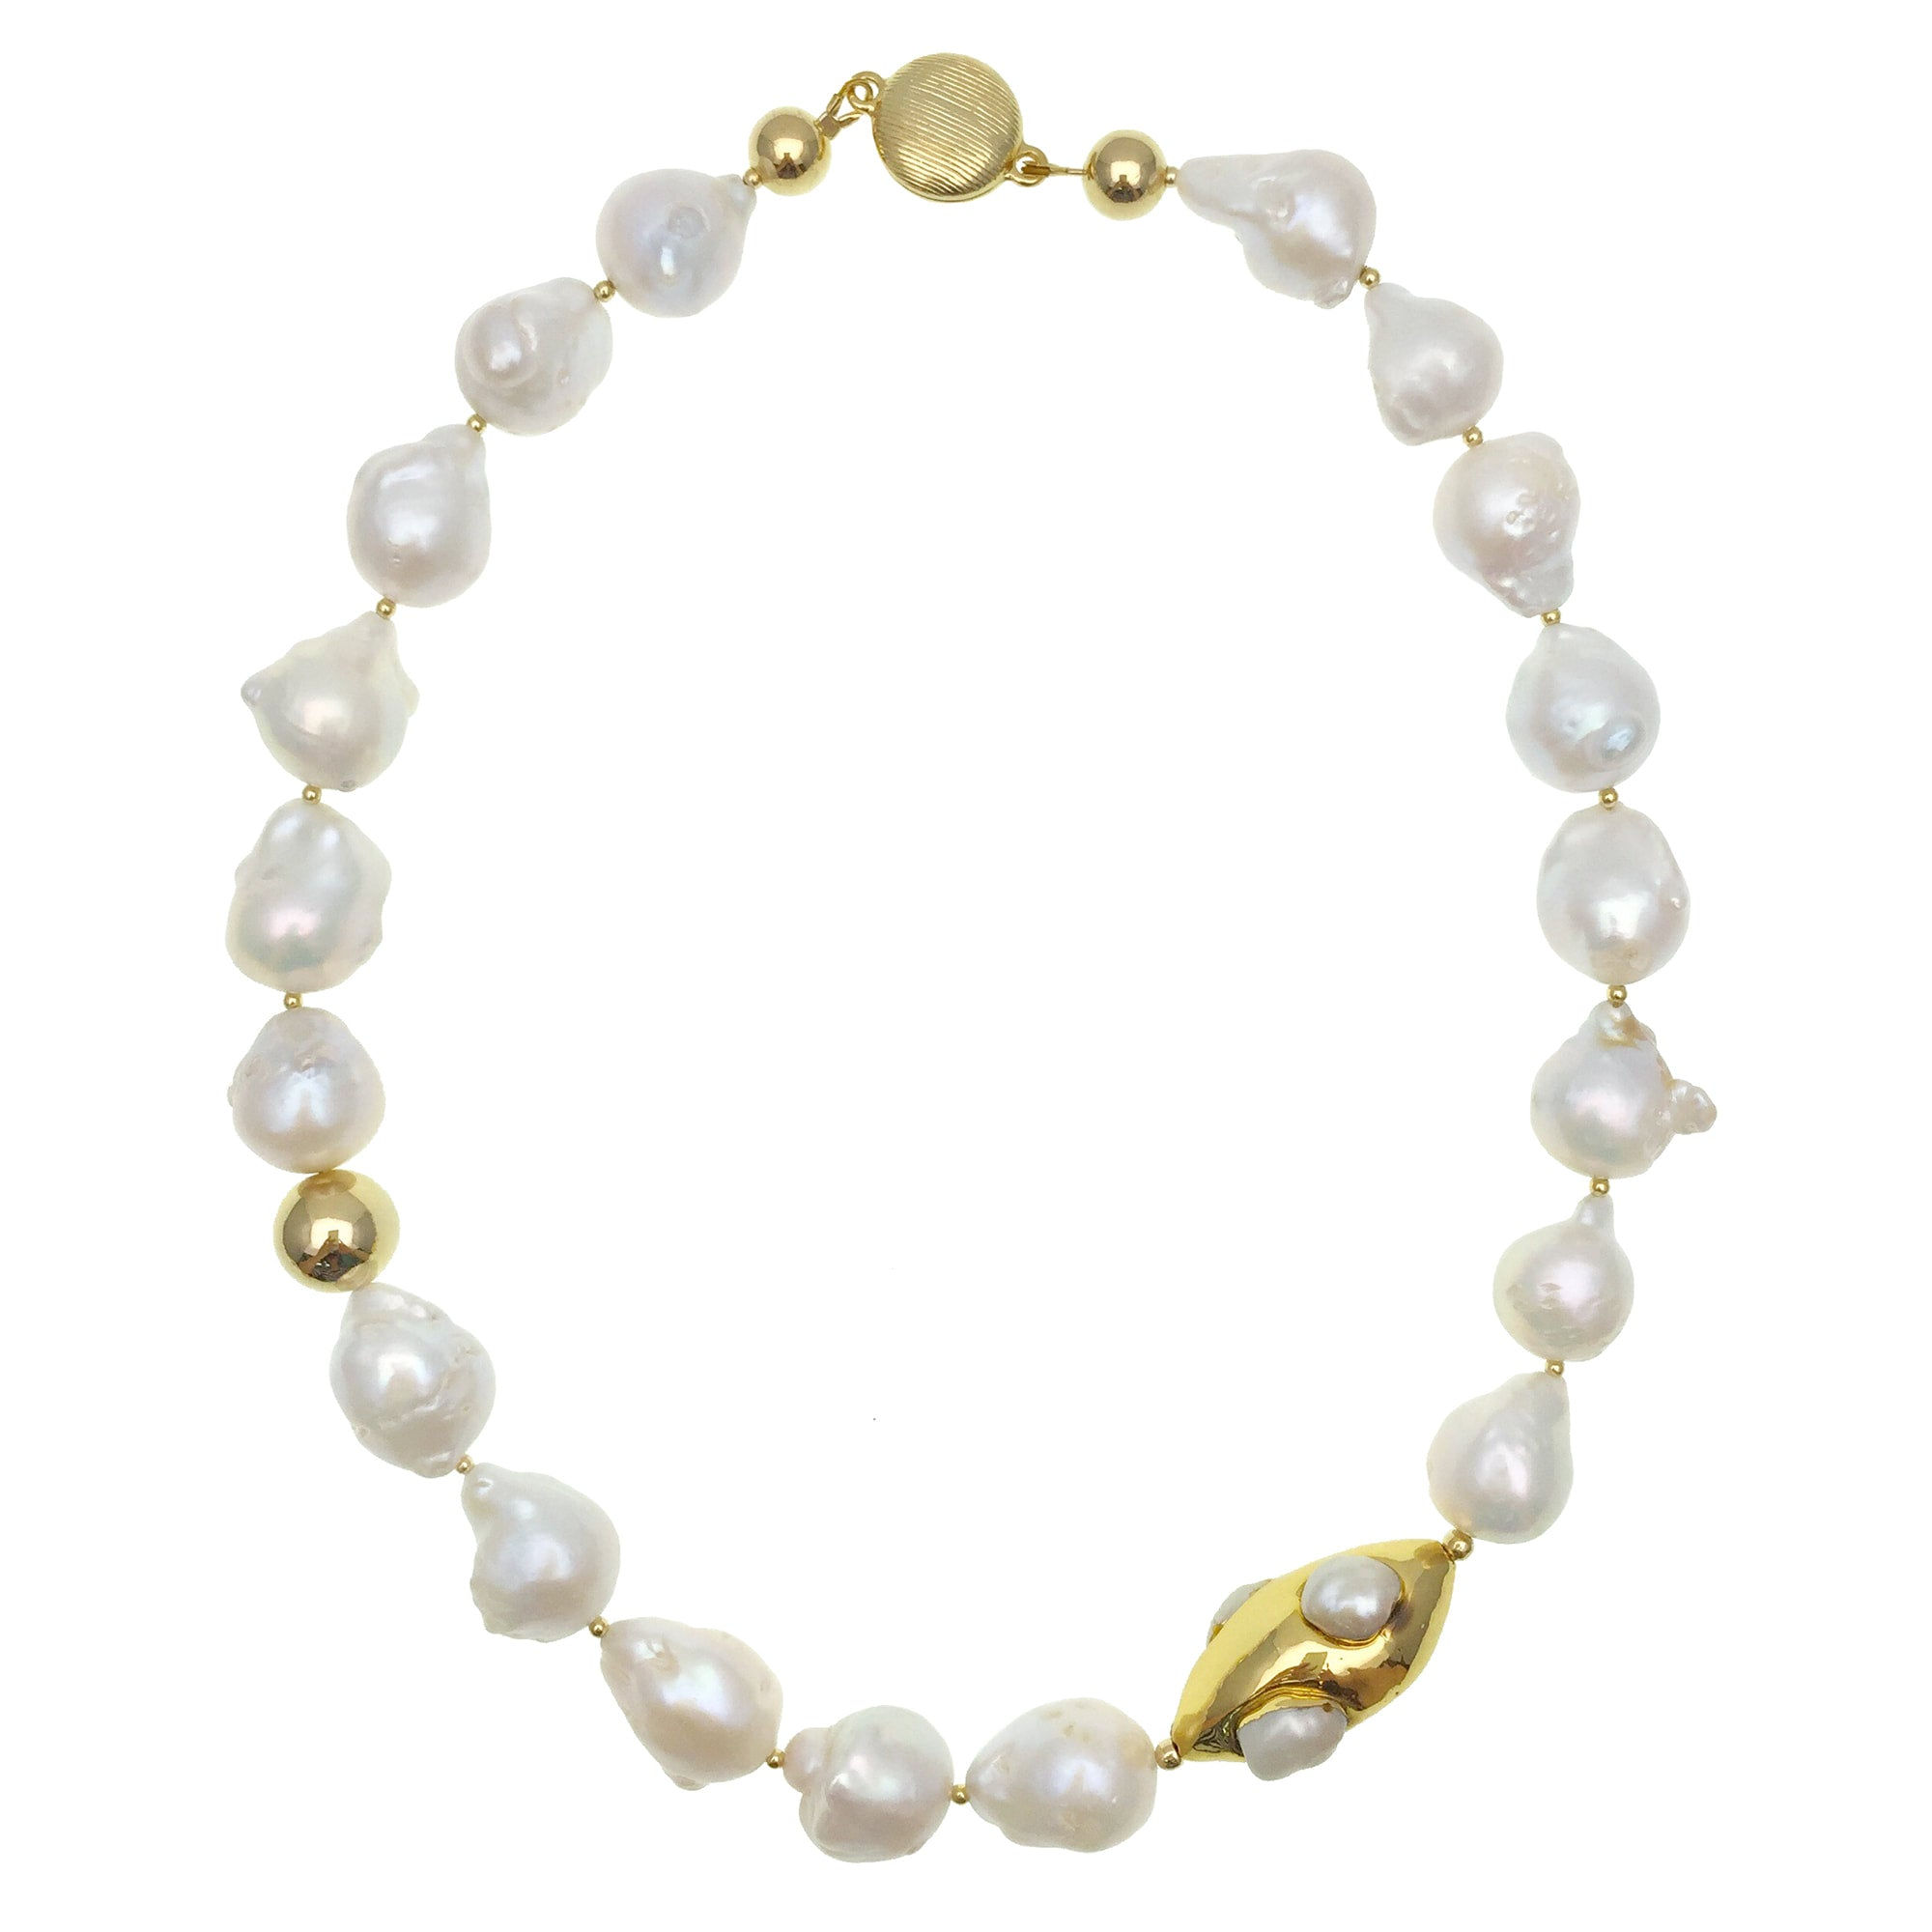 Baroque White Pearls with Pearl Inlaid Gold Bead Necklace - Shopidpearl